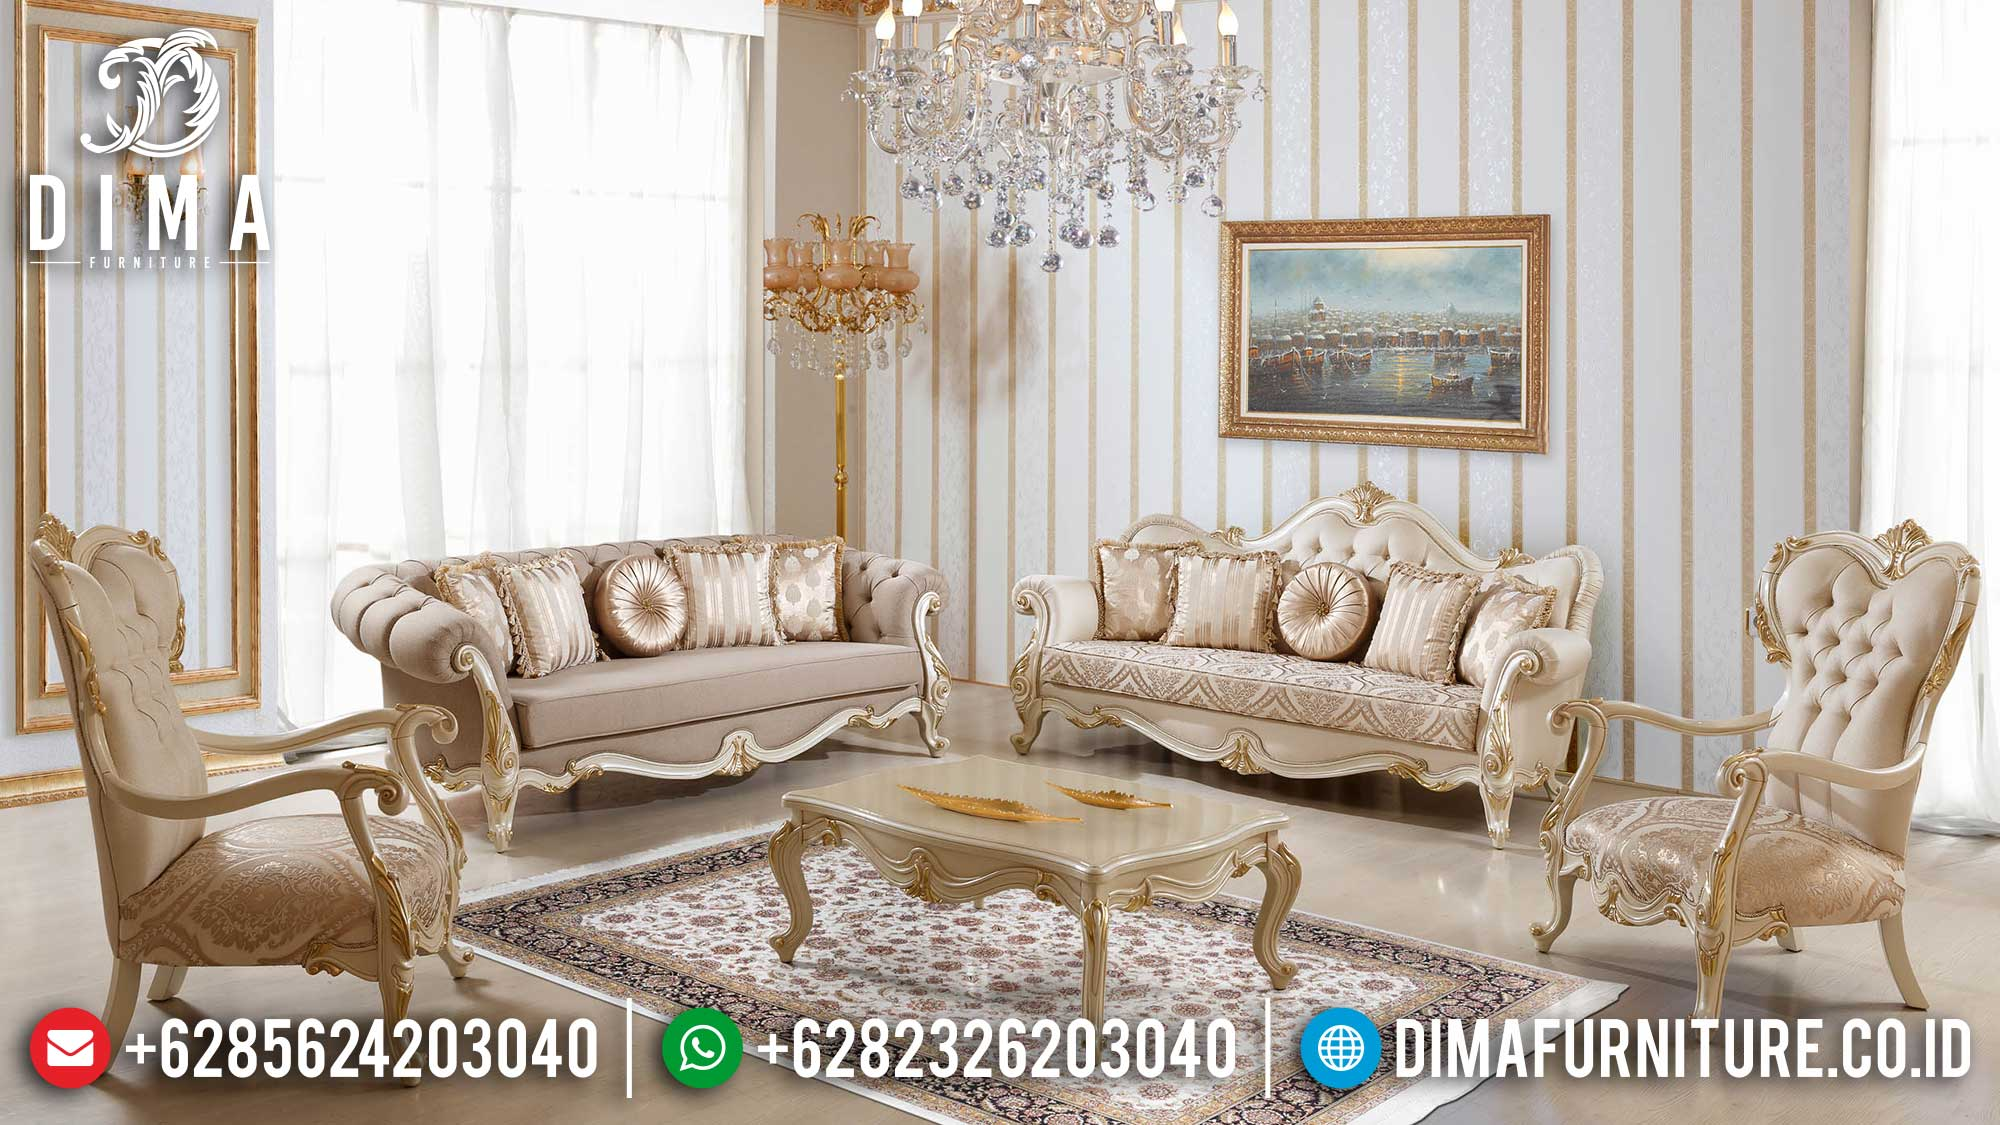 Luxurious Set Sofa Tamu Mewah Jepara Baroque Palace Style Best Quality Mm-0964